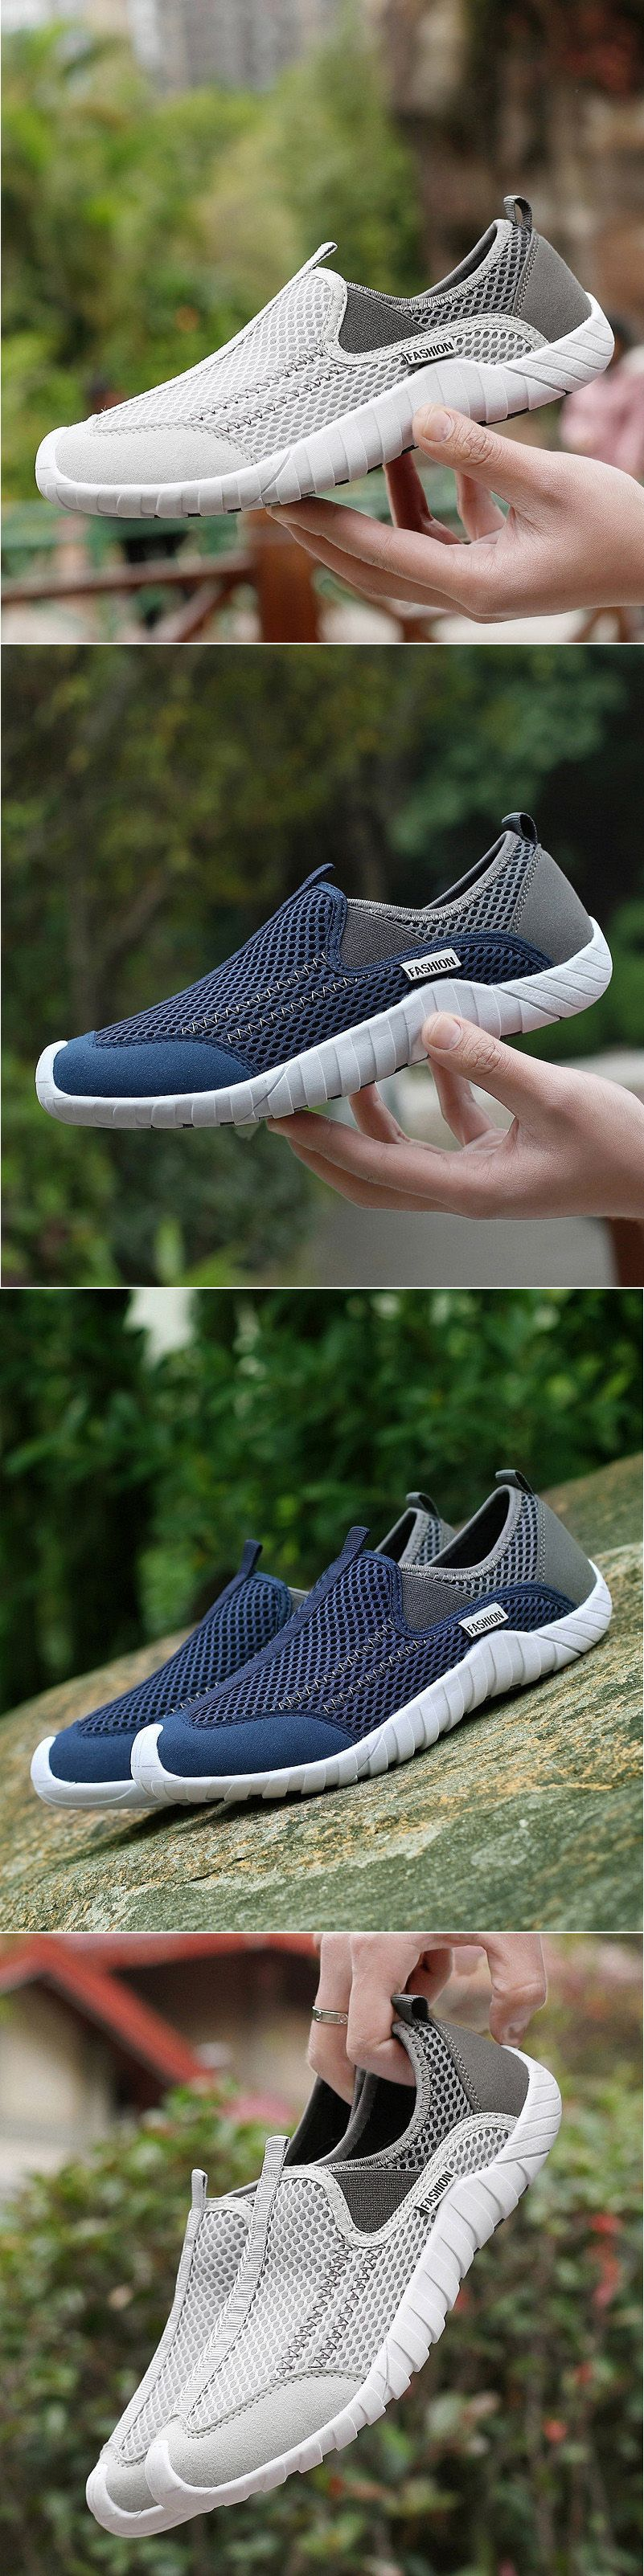 Men Lycra Mesh Fabric Breathable Running Shoes Non Slip Casual Sneakers Mens Fashion Shoes Casual Sneakers Casual Shoes